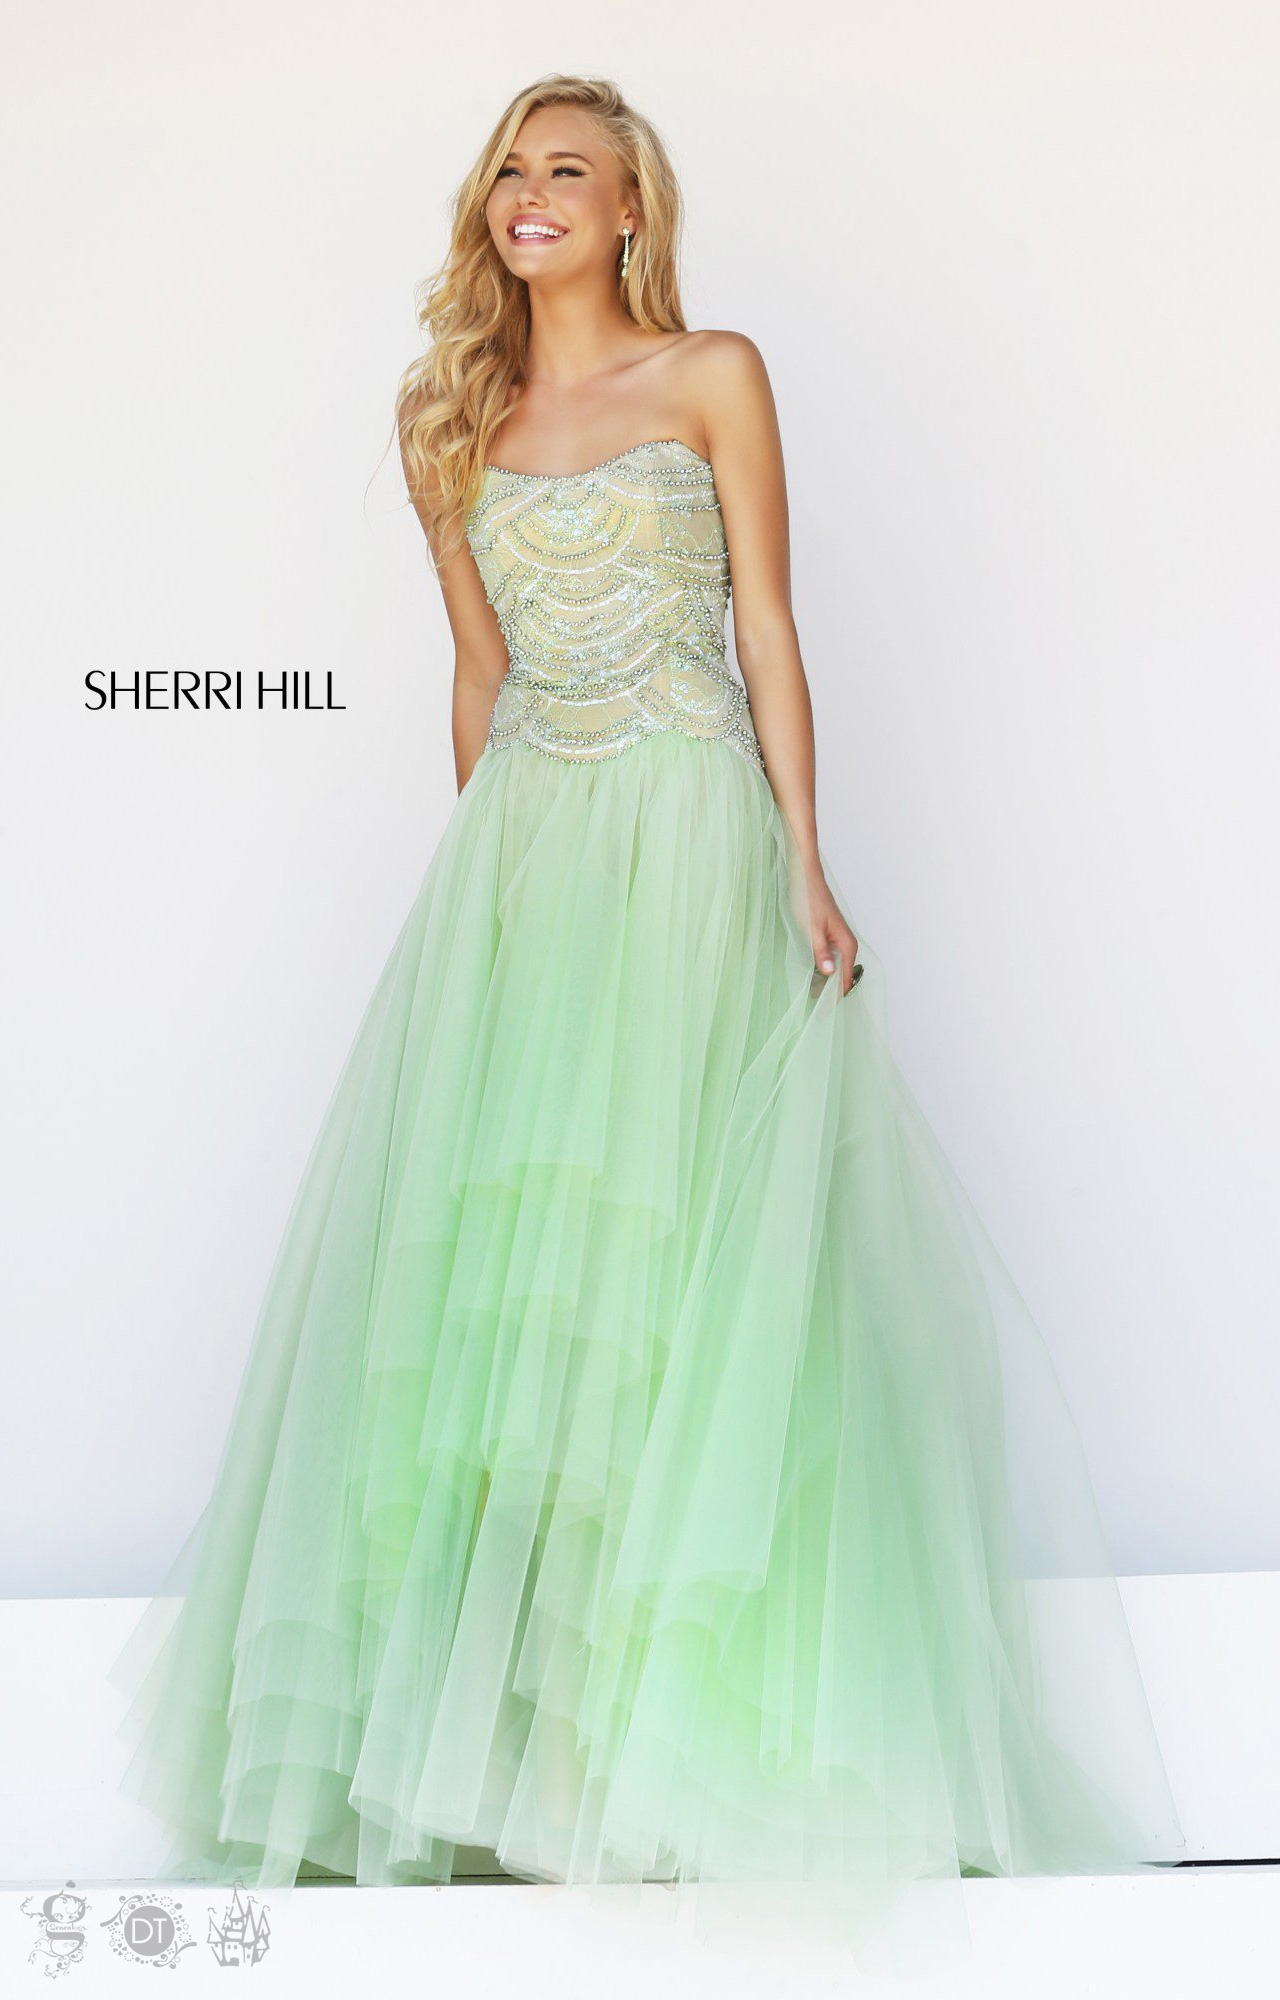 Sherri Hill 11082 Green Prom Dress 2014 [Sherri Hill 11082] - $188.00 : Prom Dresses On Sale,Discover 2014 Dresses For Prom